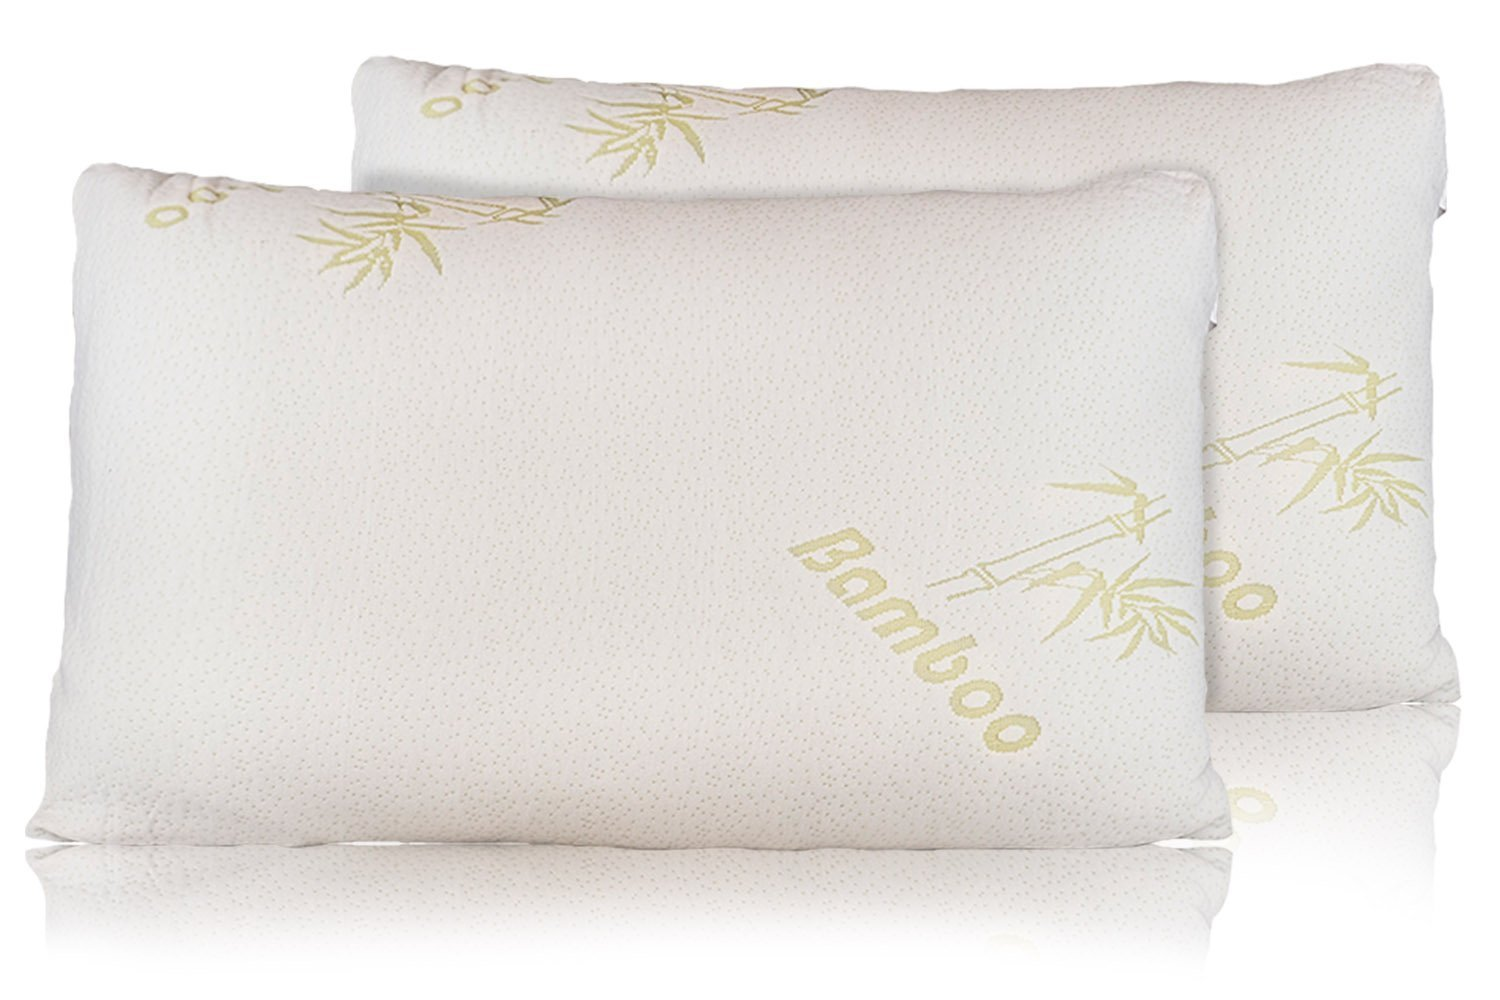 Firm Memory Foam Pillow Relax Home Life Bamboo Pillow With Firm Shredded Memory Foam